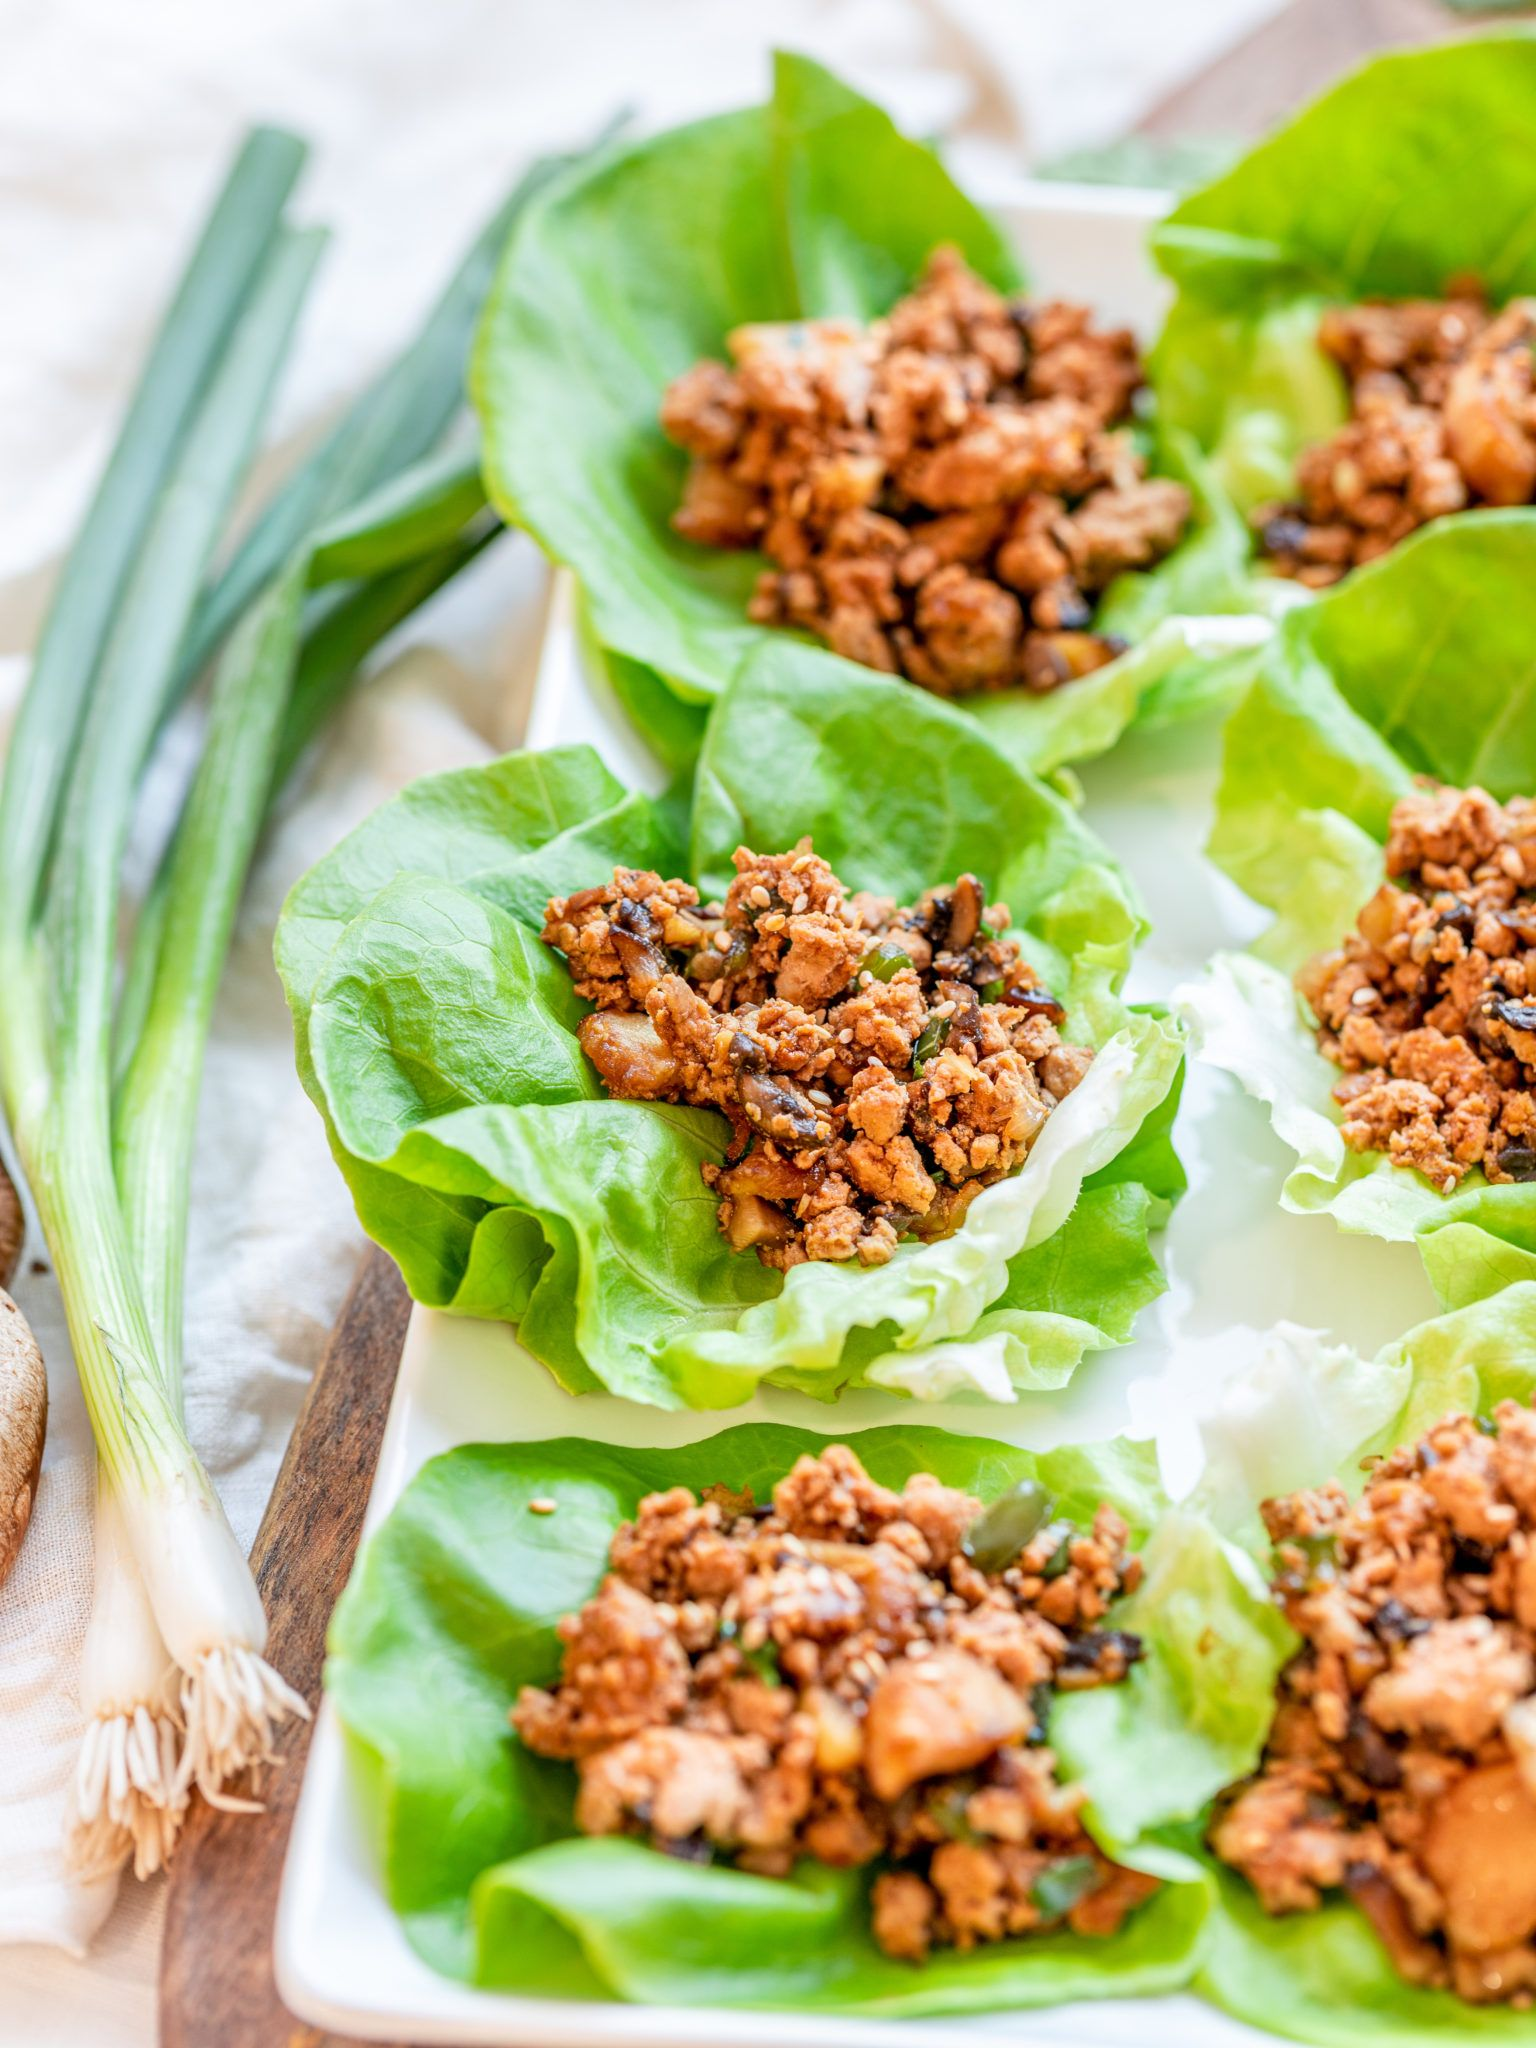 pf chang's inspired chicken lettuce wraps  recipe  lettuce wraps vegetarian lettuce wraps